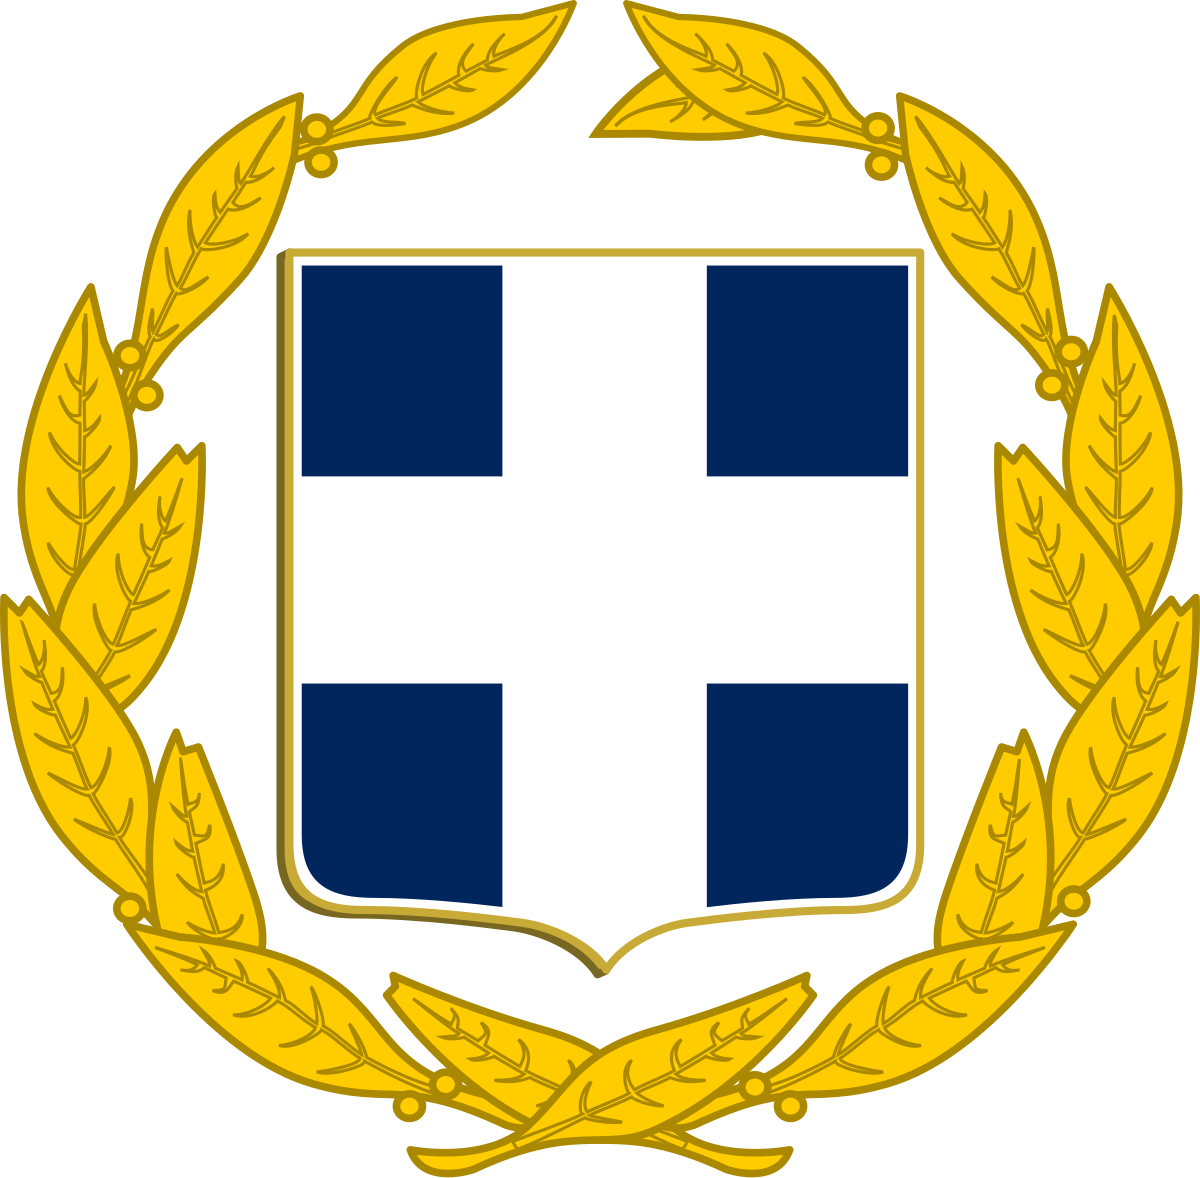 Greece clipart athens symbol. Hellenic armed forces wikipedia